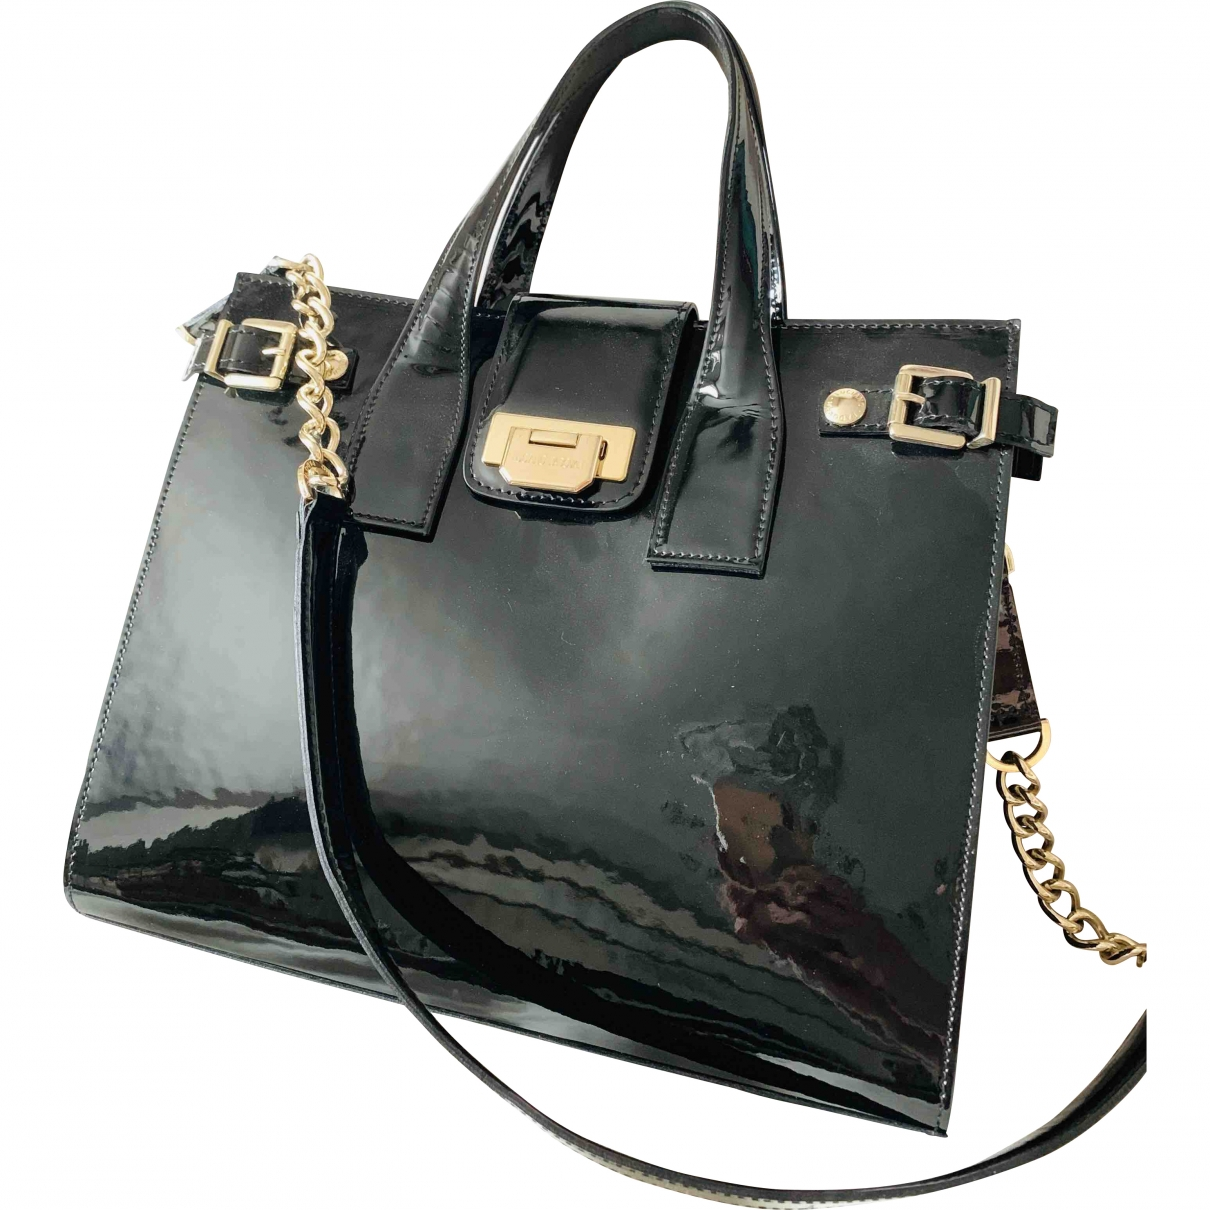 Luciano Padovan \N Black Patent leather handbag for Women \N